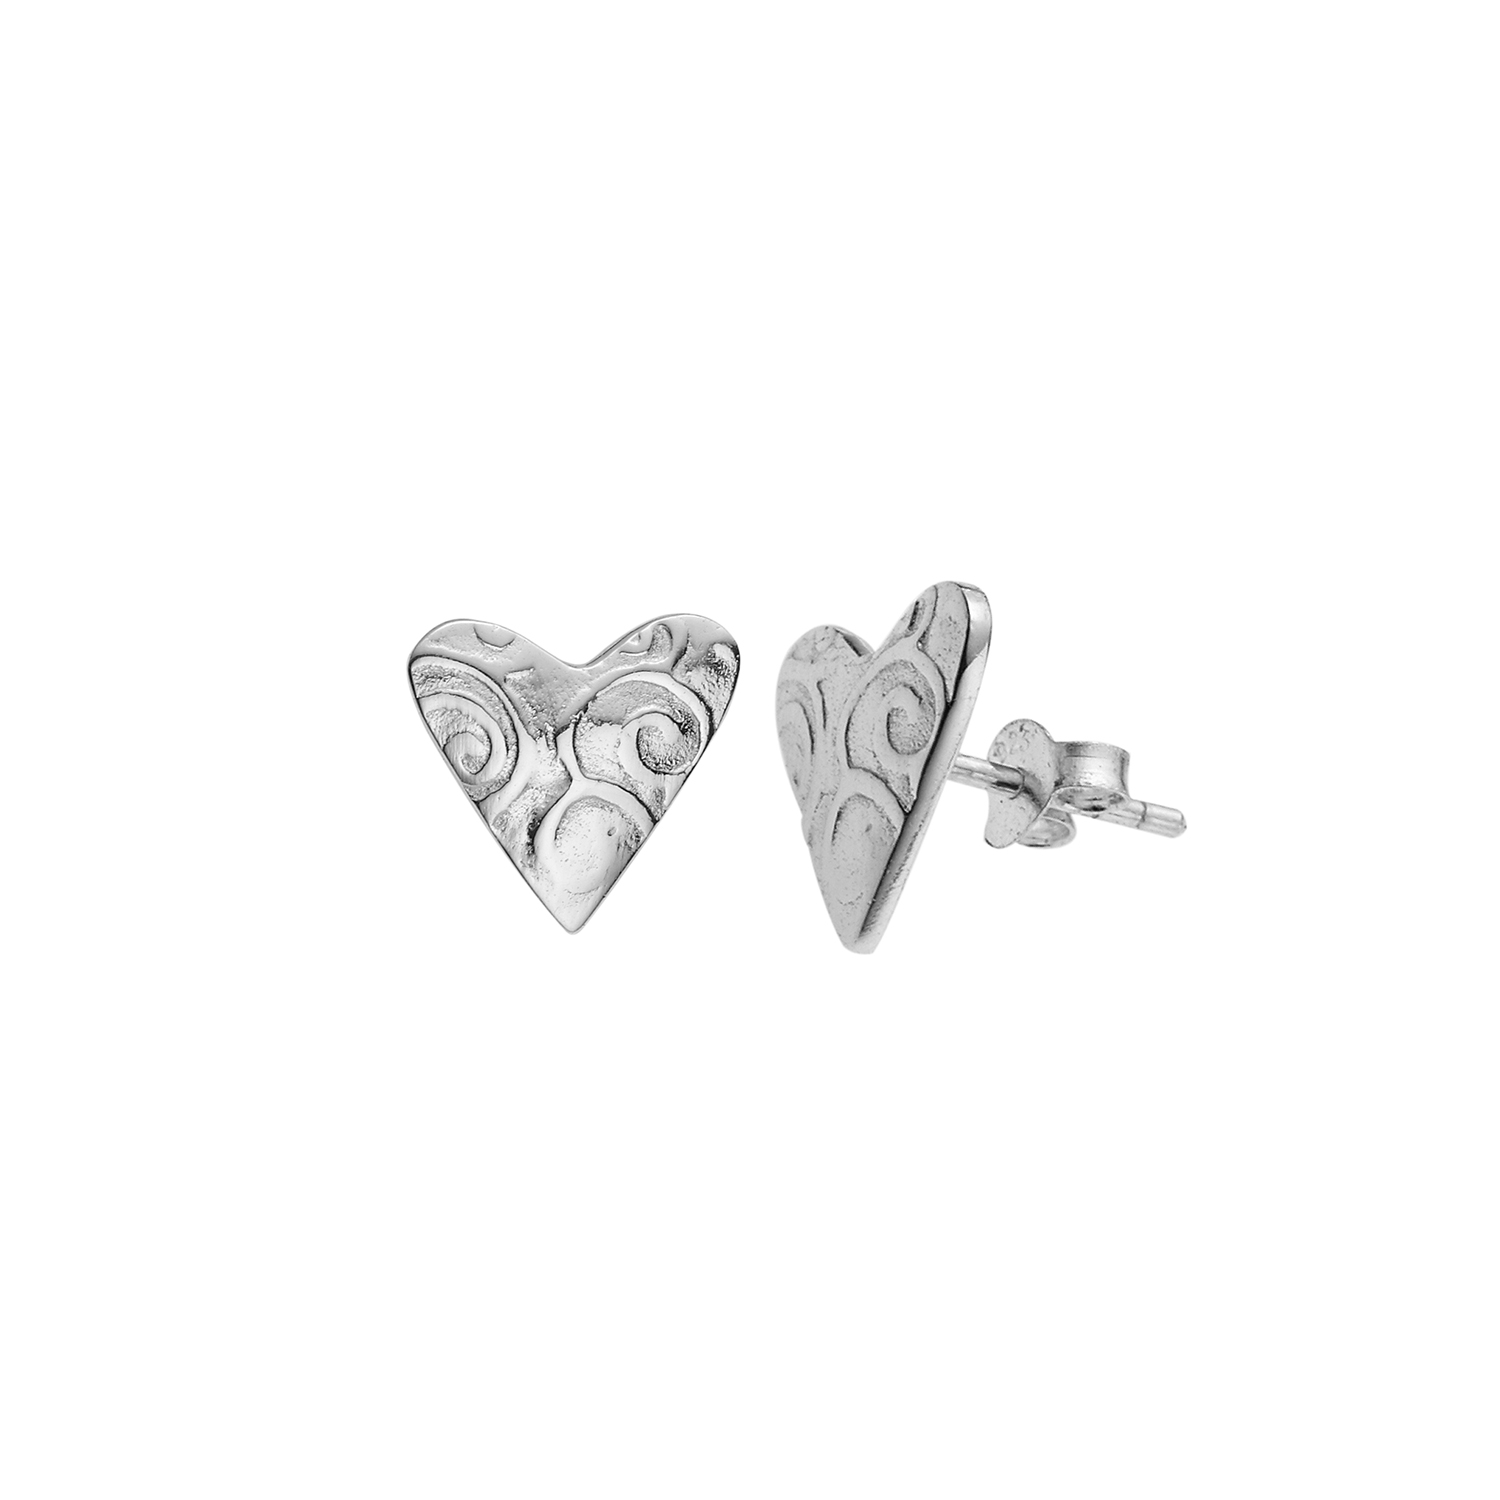 925 Sterling Silver Heart with E-coating Post Stud Earrings 12 mm - Nickel Free